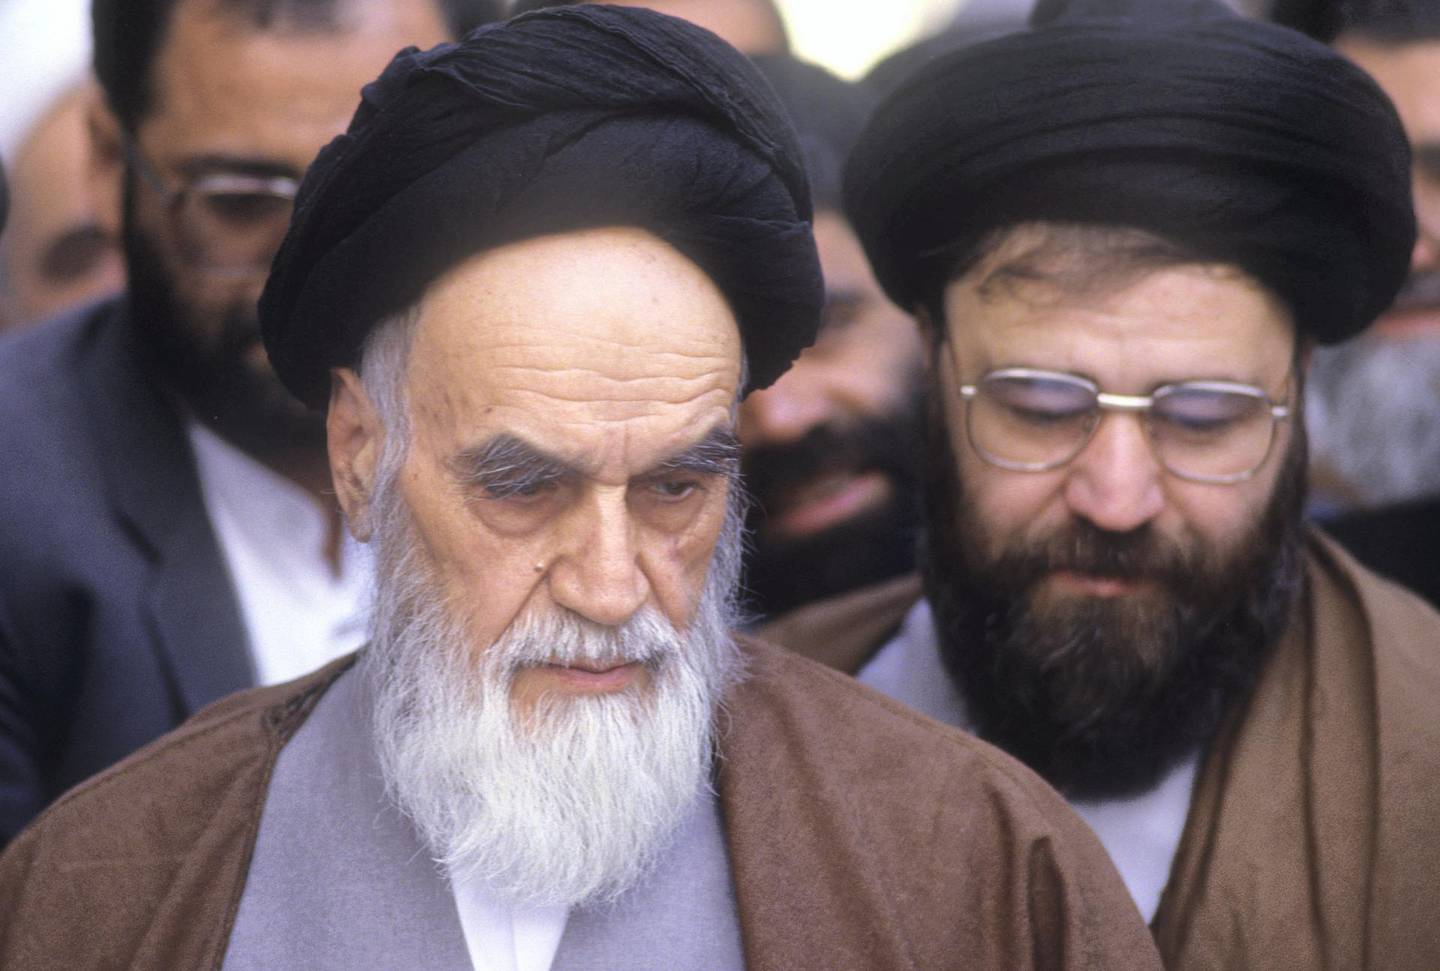 Tehran, Iran: Ayatollah Ruhollah Khomeini (L) the leader and founder of Islamic Republic of Iran, looking frail votes for parliament election, in his residence Jamaran, in north Tehran 8th April 1988. His son Ahmad (R) stands next to him. (Photo by Kaveh Kazemi/Getty Images)